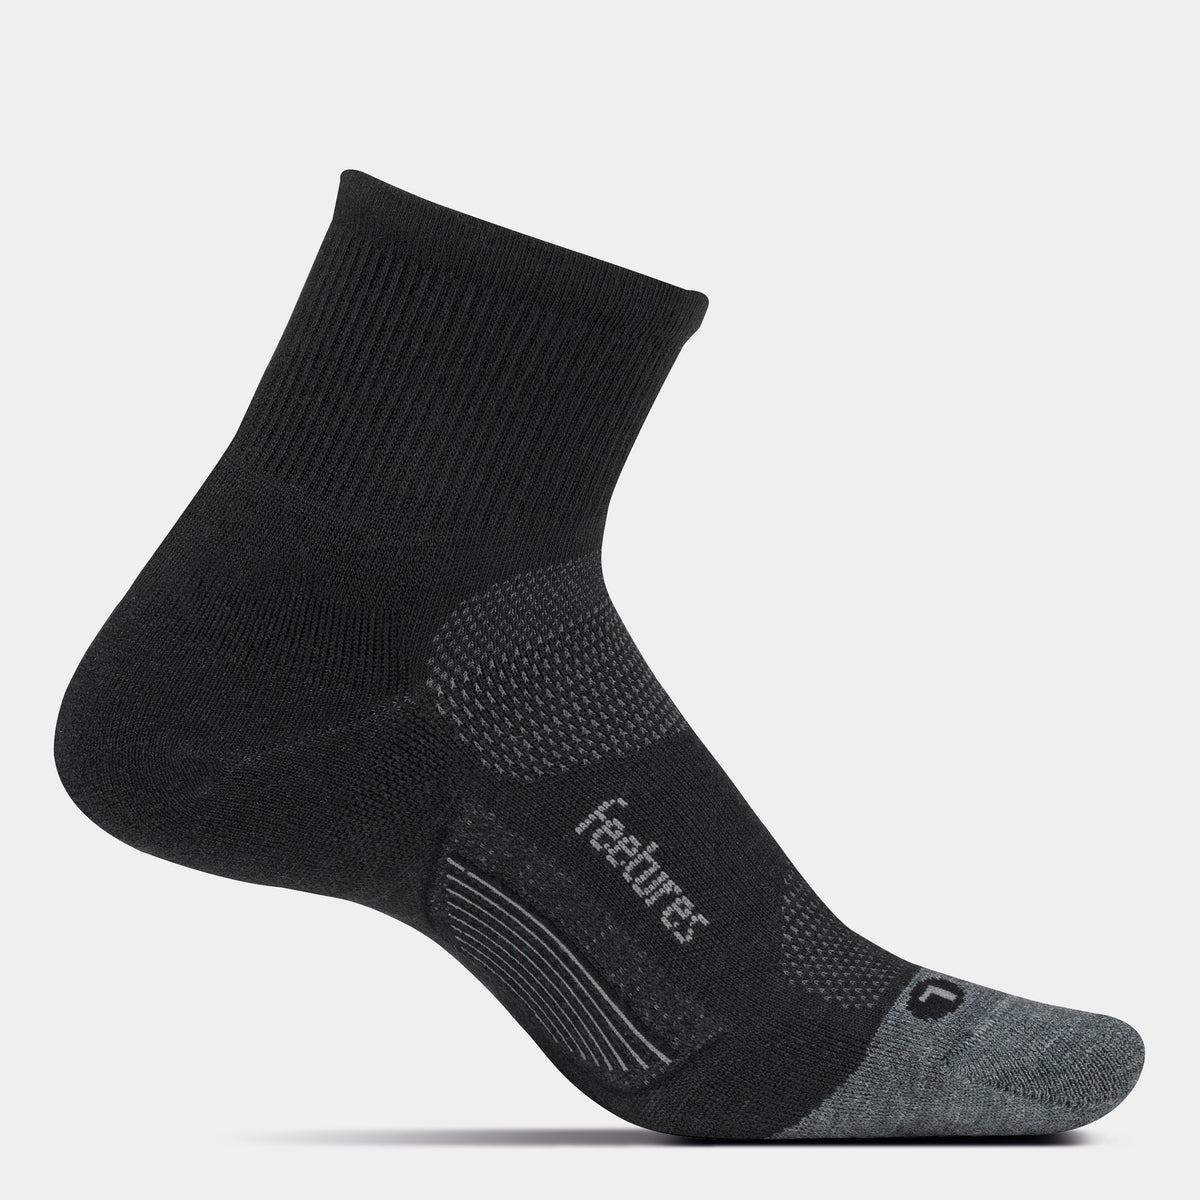 Merino 10 Ultra Light Quarter